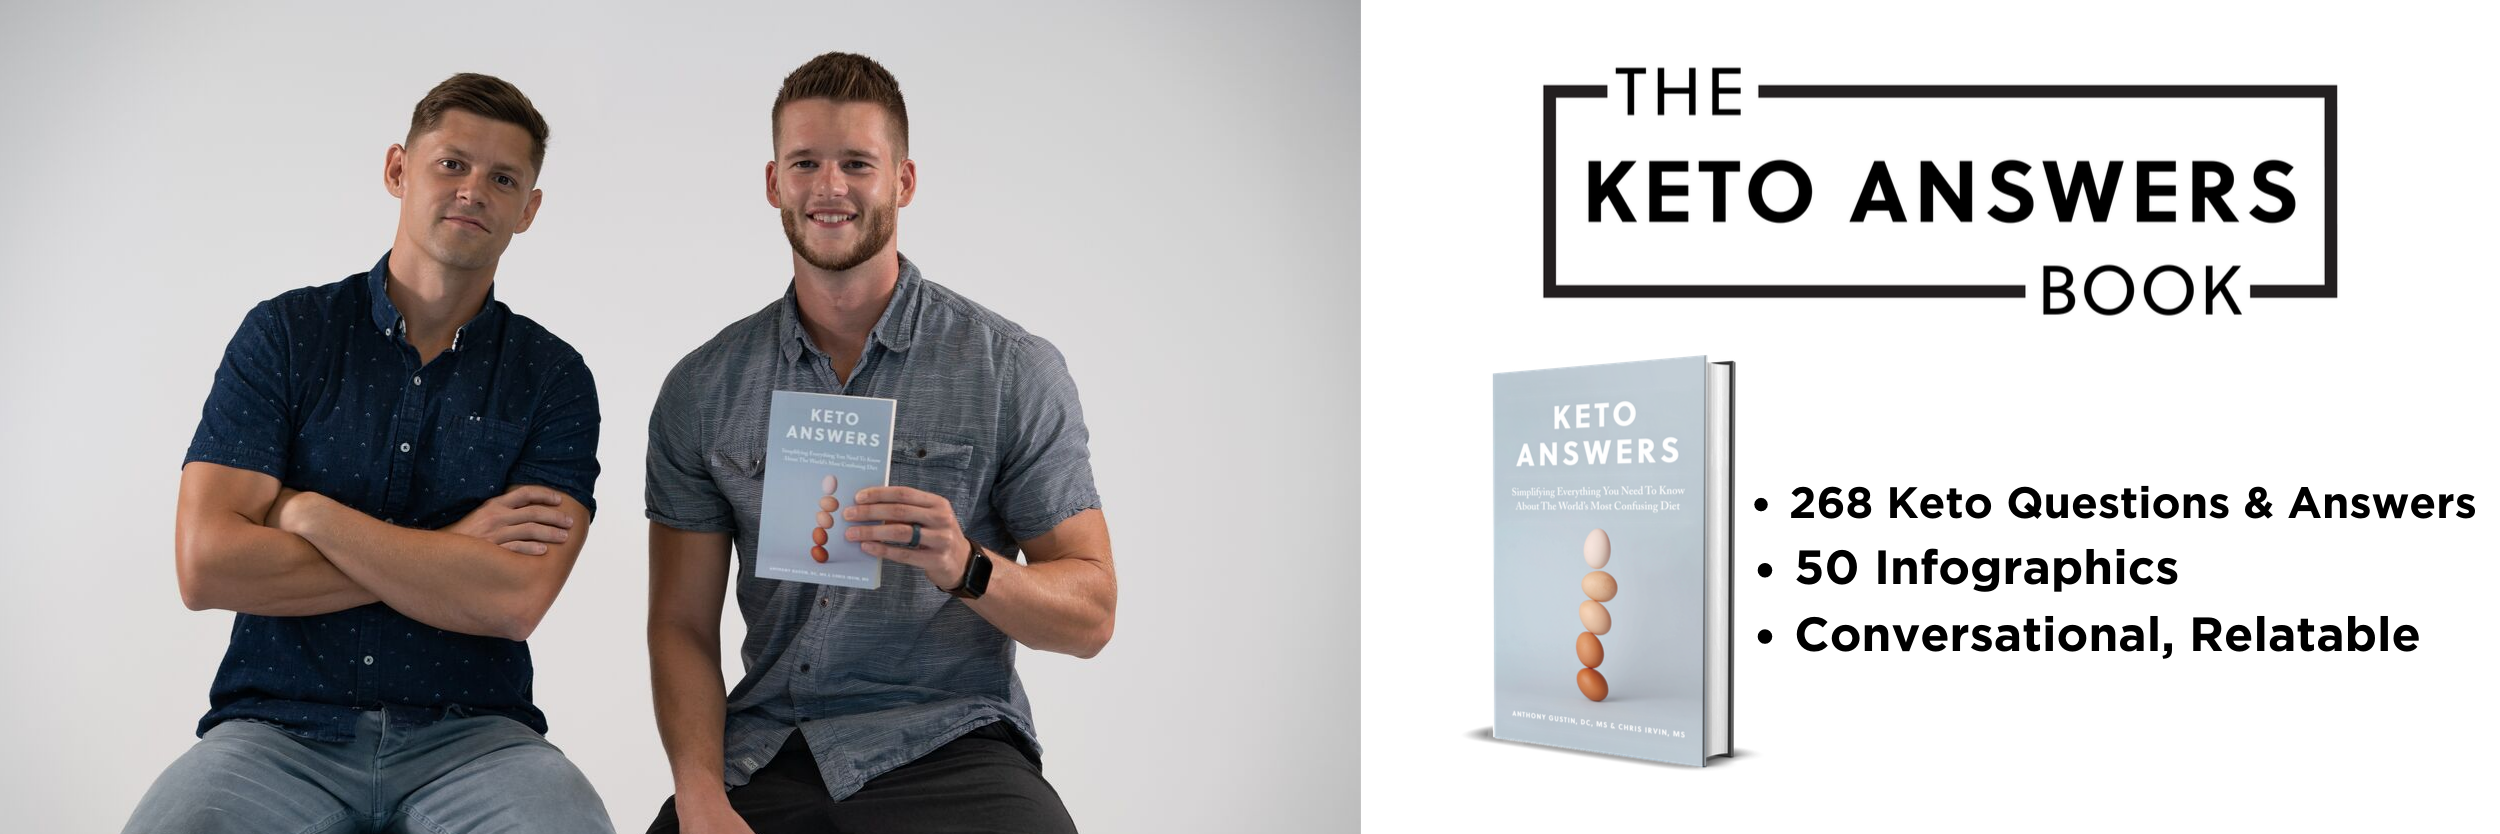 Keto Answers Book Banner.png